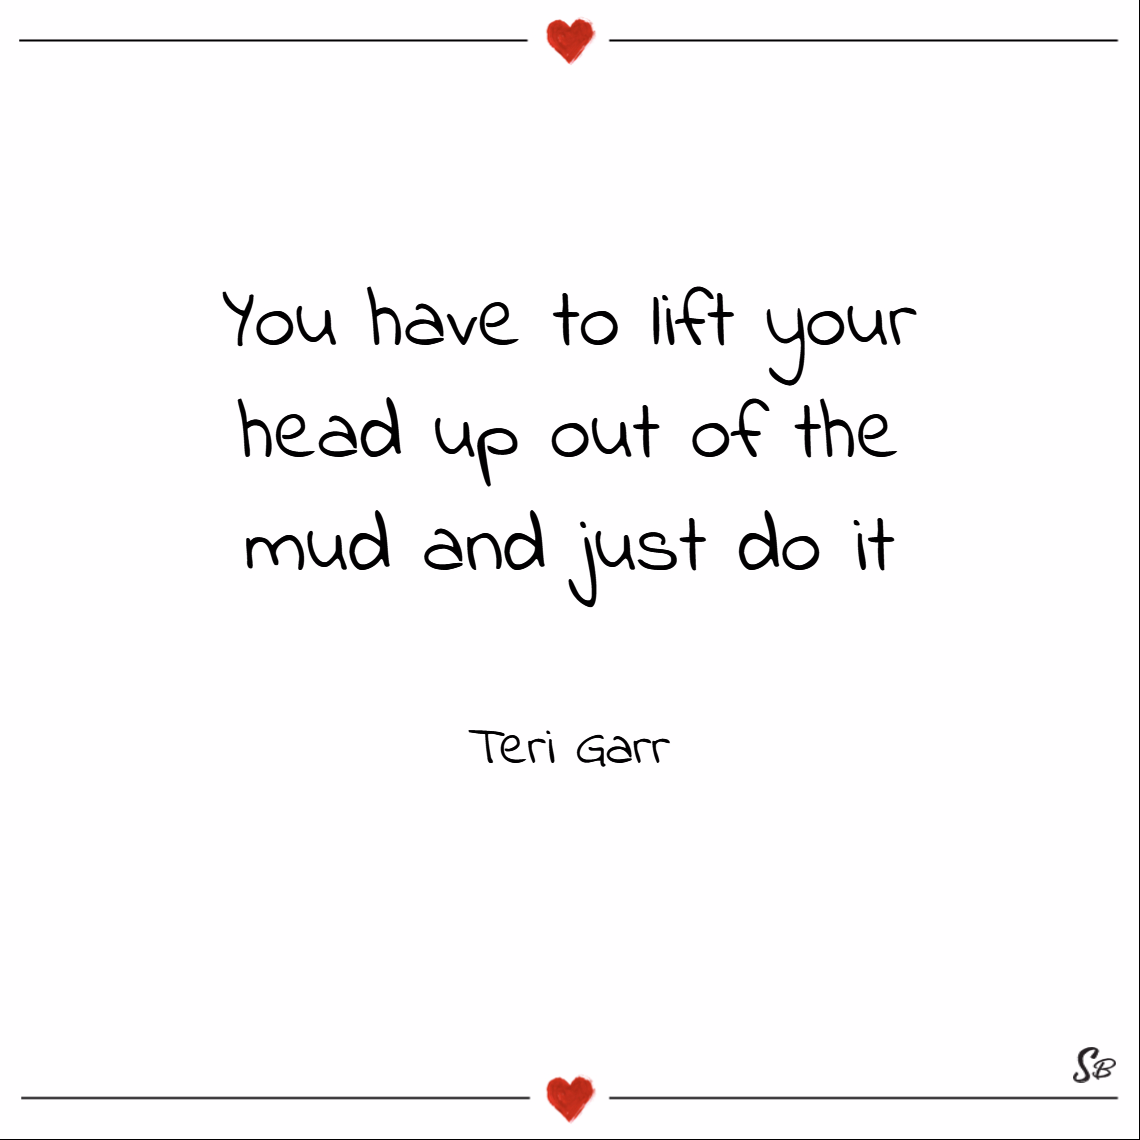 You have to lift your head up out of the mud and just do it. – teri garr Keep your head up quotes